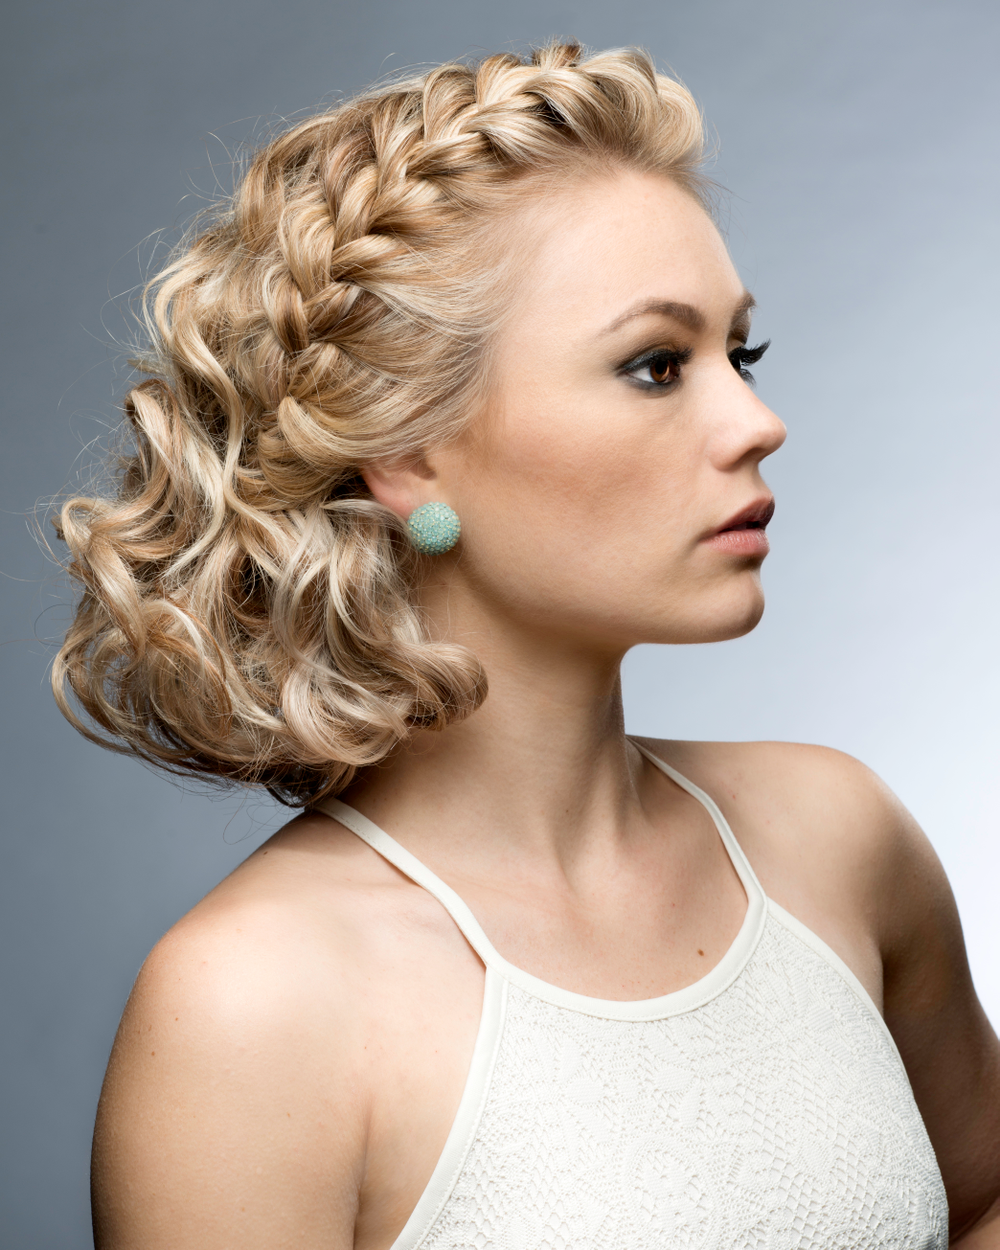 Braids, sometimes glamorous, sometimes exotic and intricate but never go unnoticed. Whether elegant, chic, organic or edgy, you can dress them up or dress them down to match your mood. Carley's braided updo accentuates her maturity and confidence while at the same time displaying her youthful exuberance.